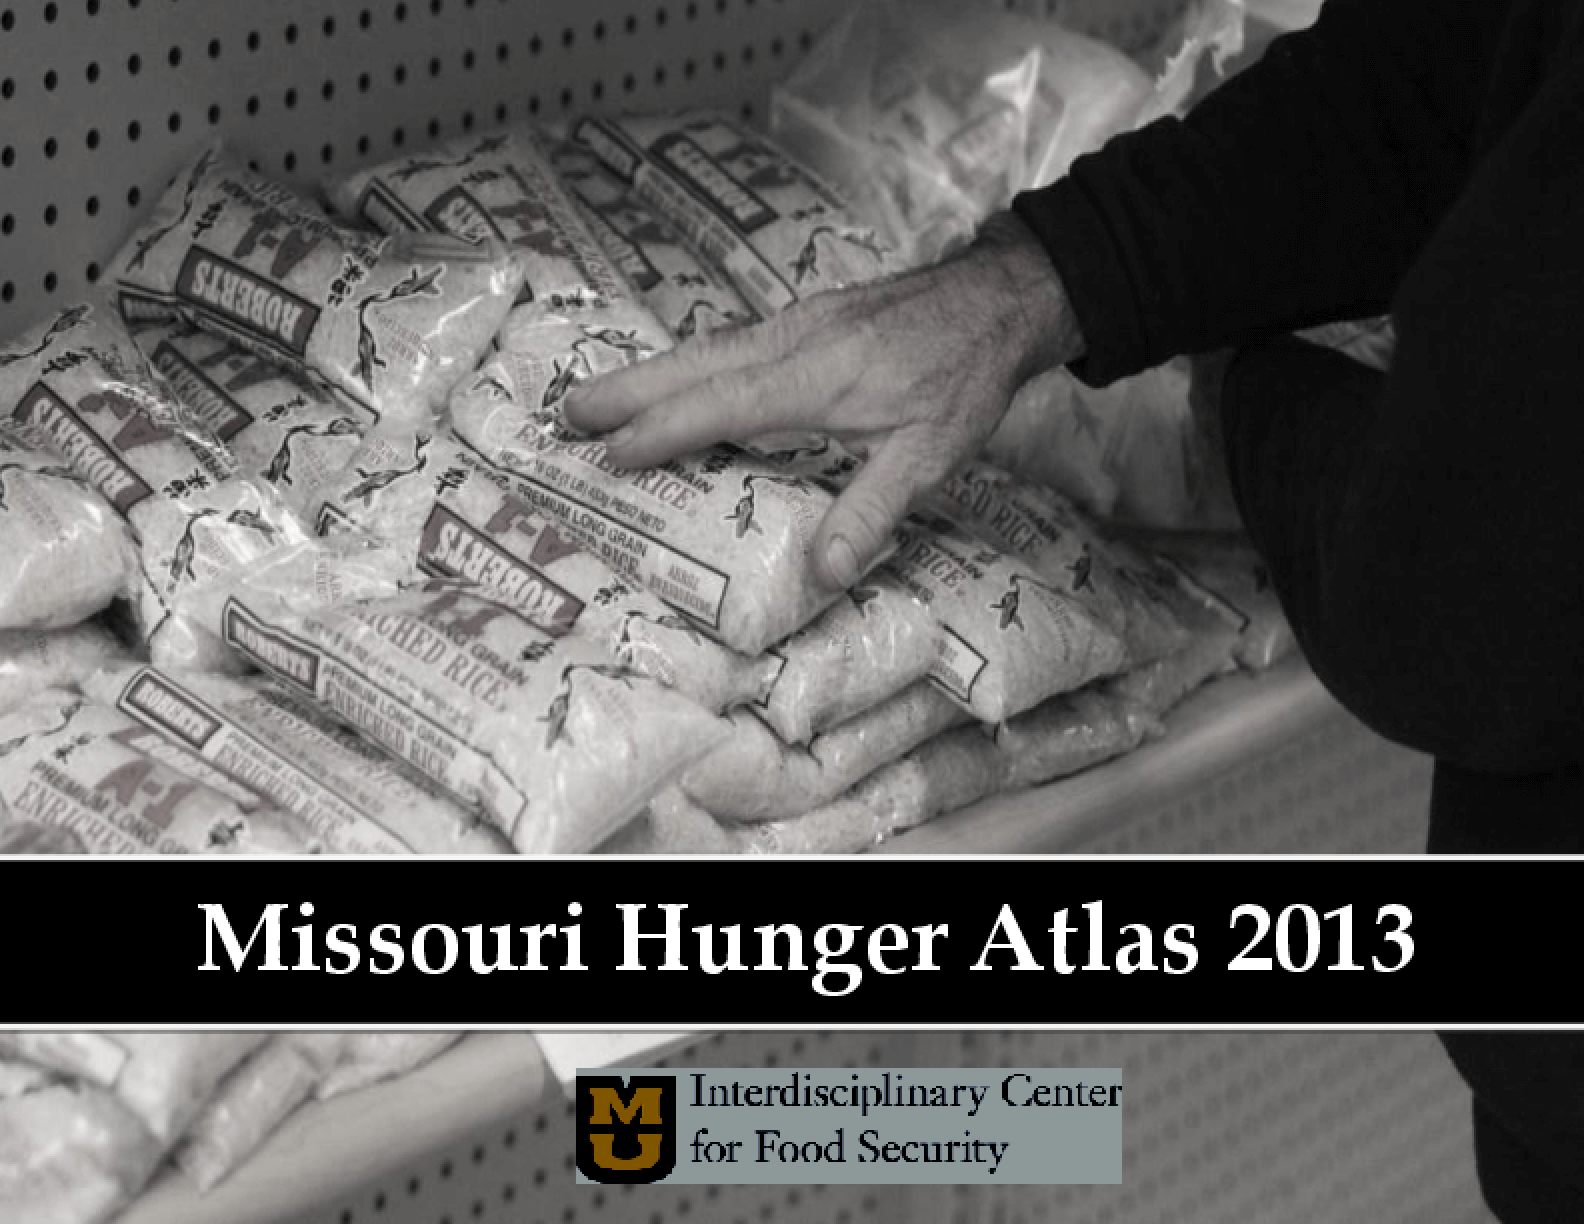 Missouri Hunger Atlas 2013